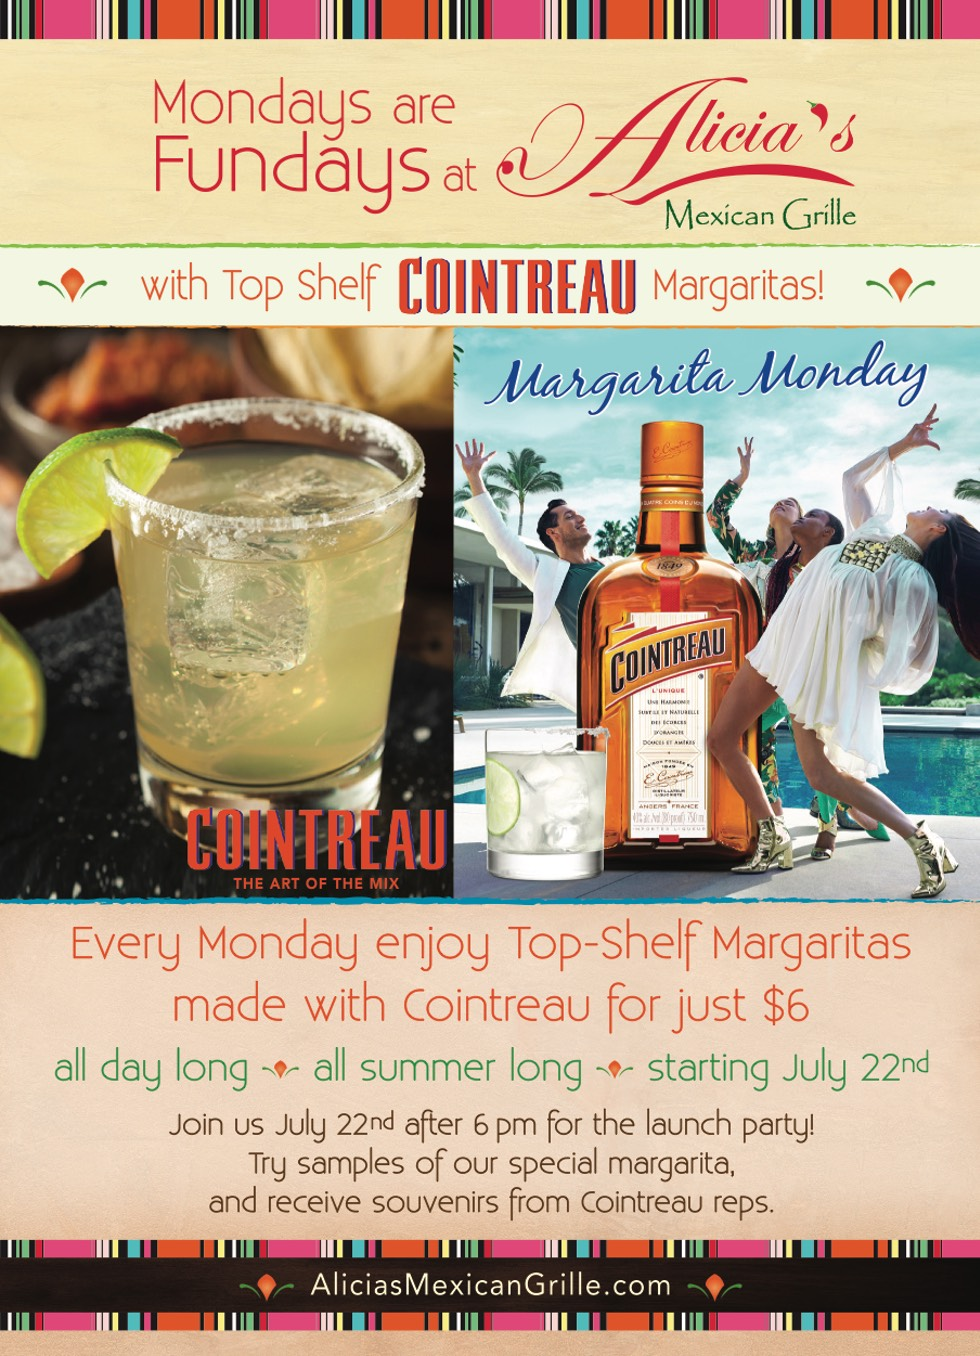 Every Monday enjoy top-shelf margaritas made with Cointreau for just $6!